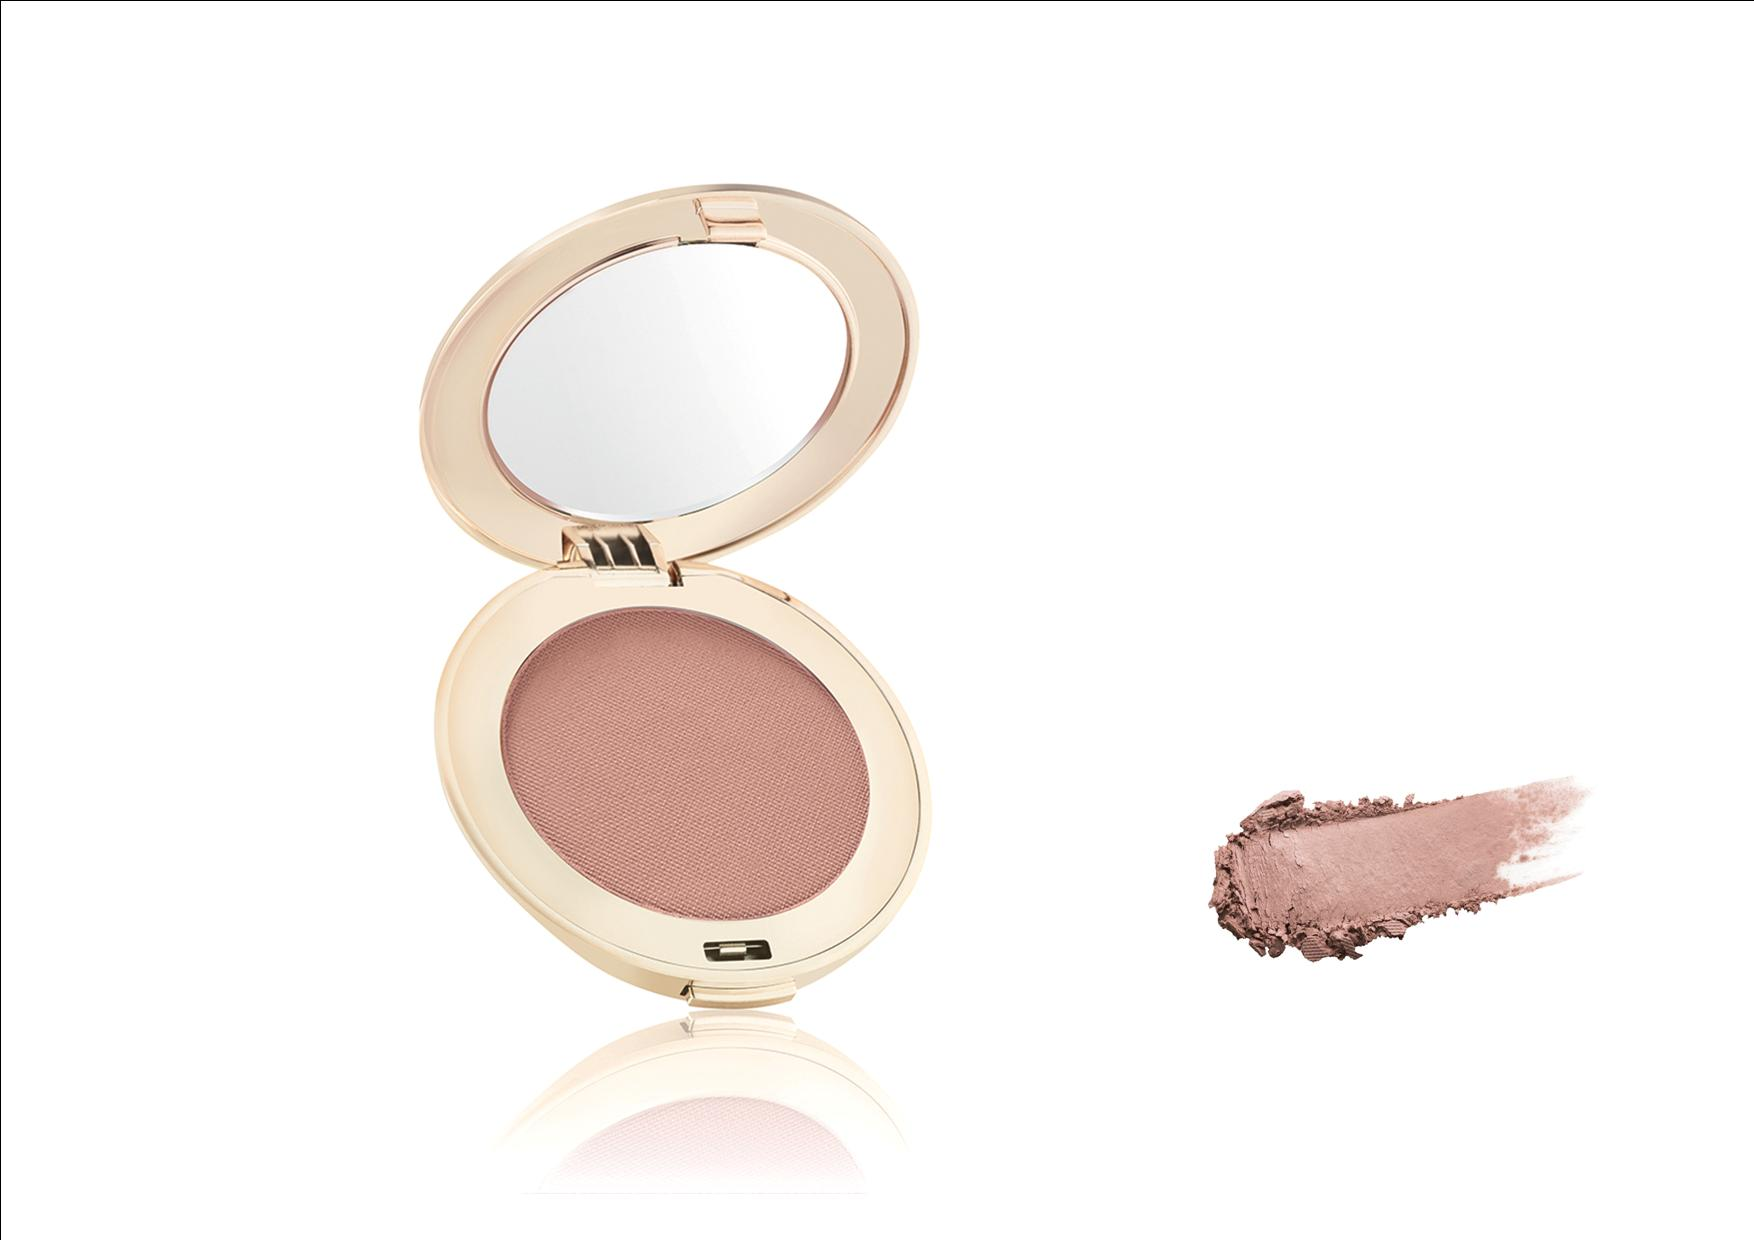 Jane Iredale WANGEN Pure Pressed Blush Flawless